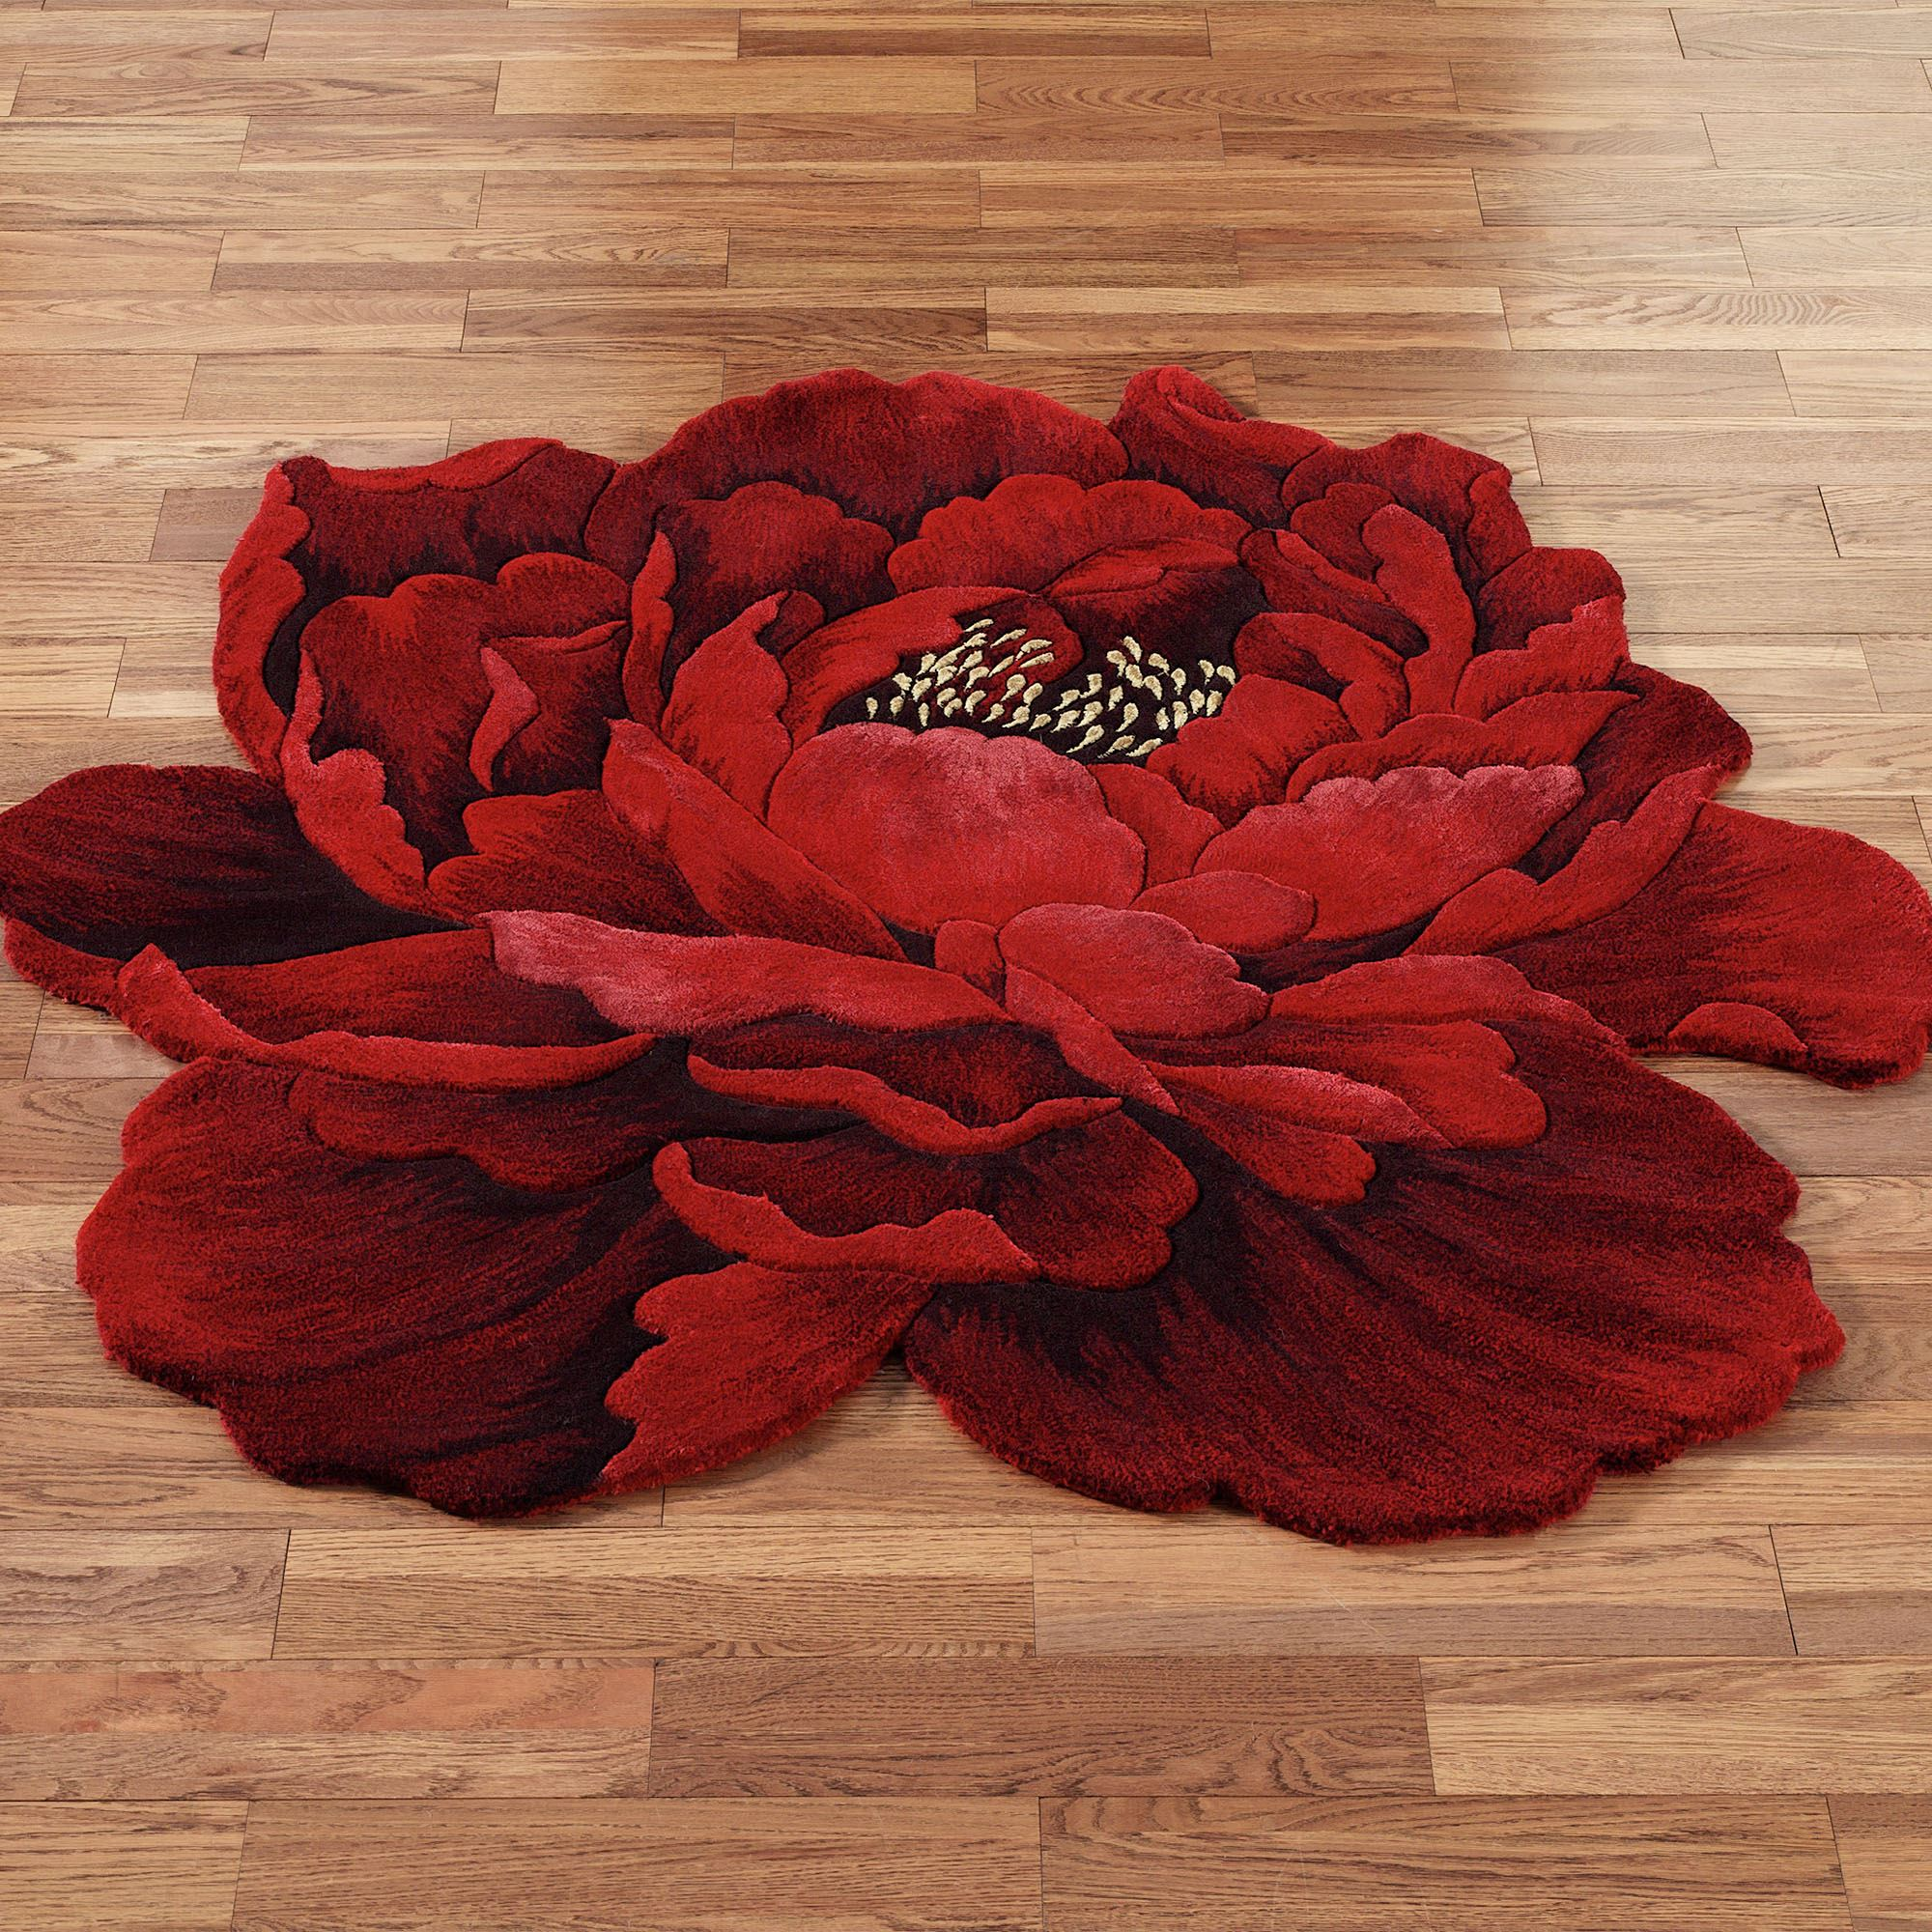 Statues And Sculptures Home Decorating Scarlet Magic Peony Flower Shaped Round Rugs